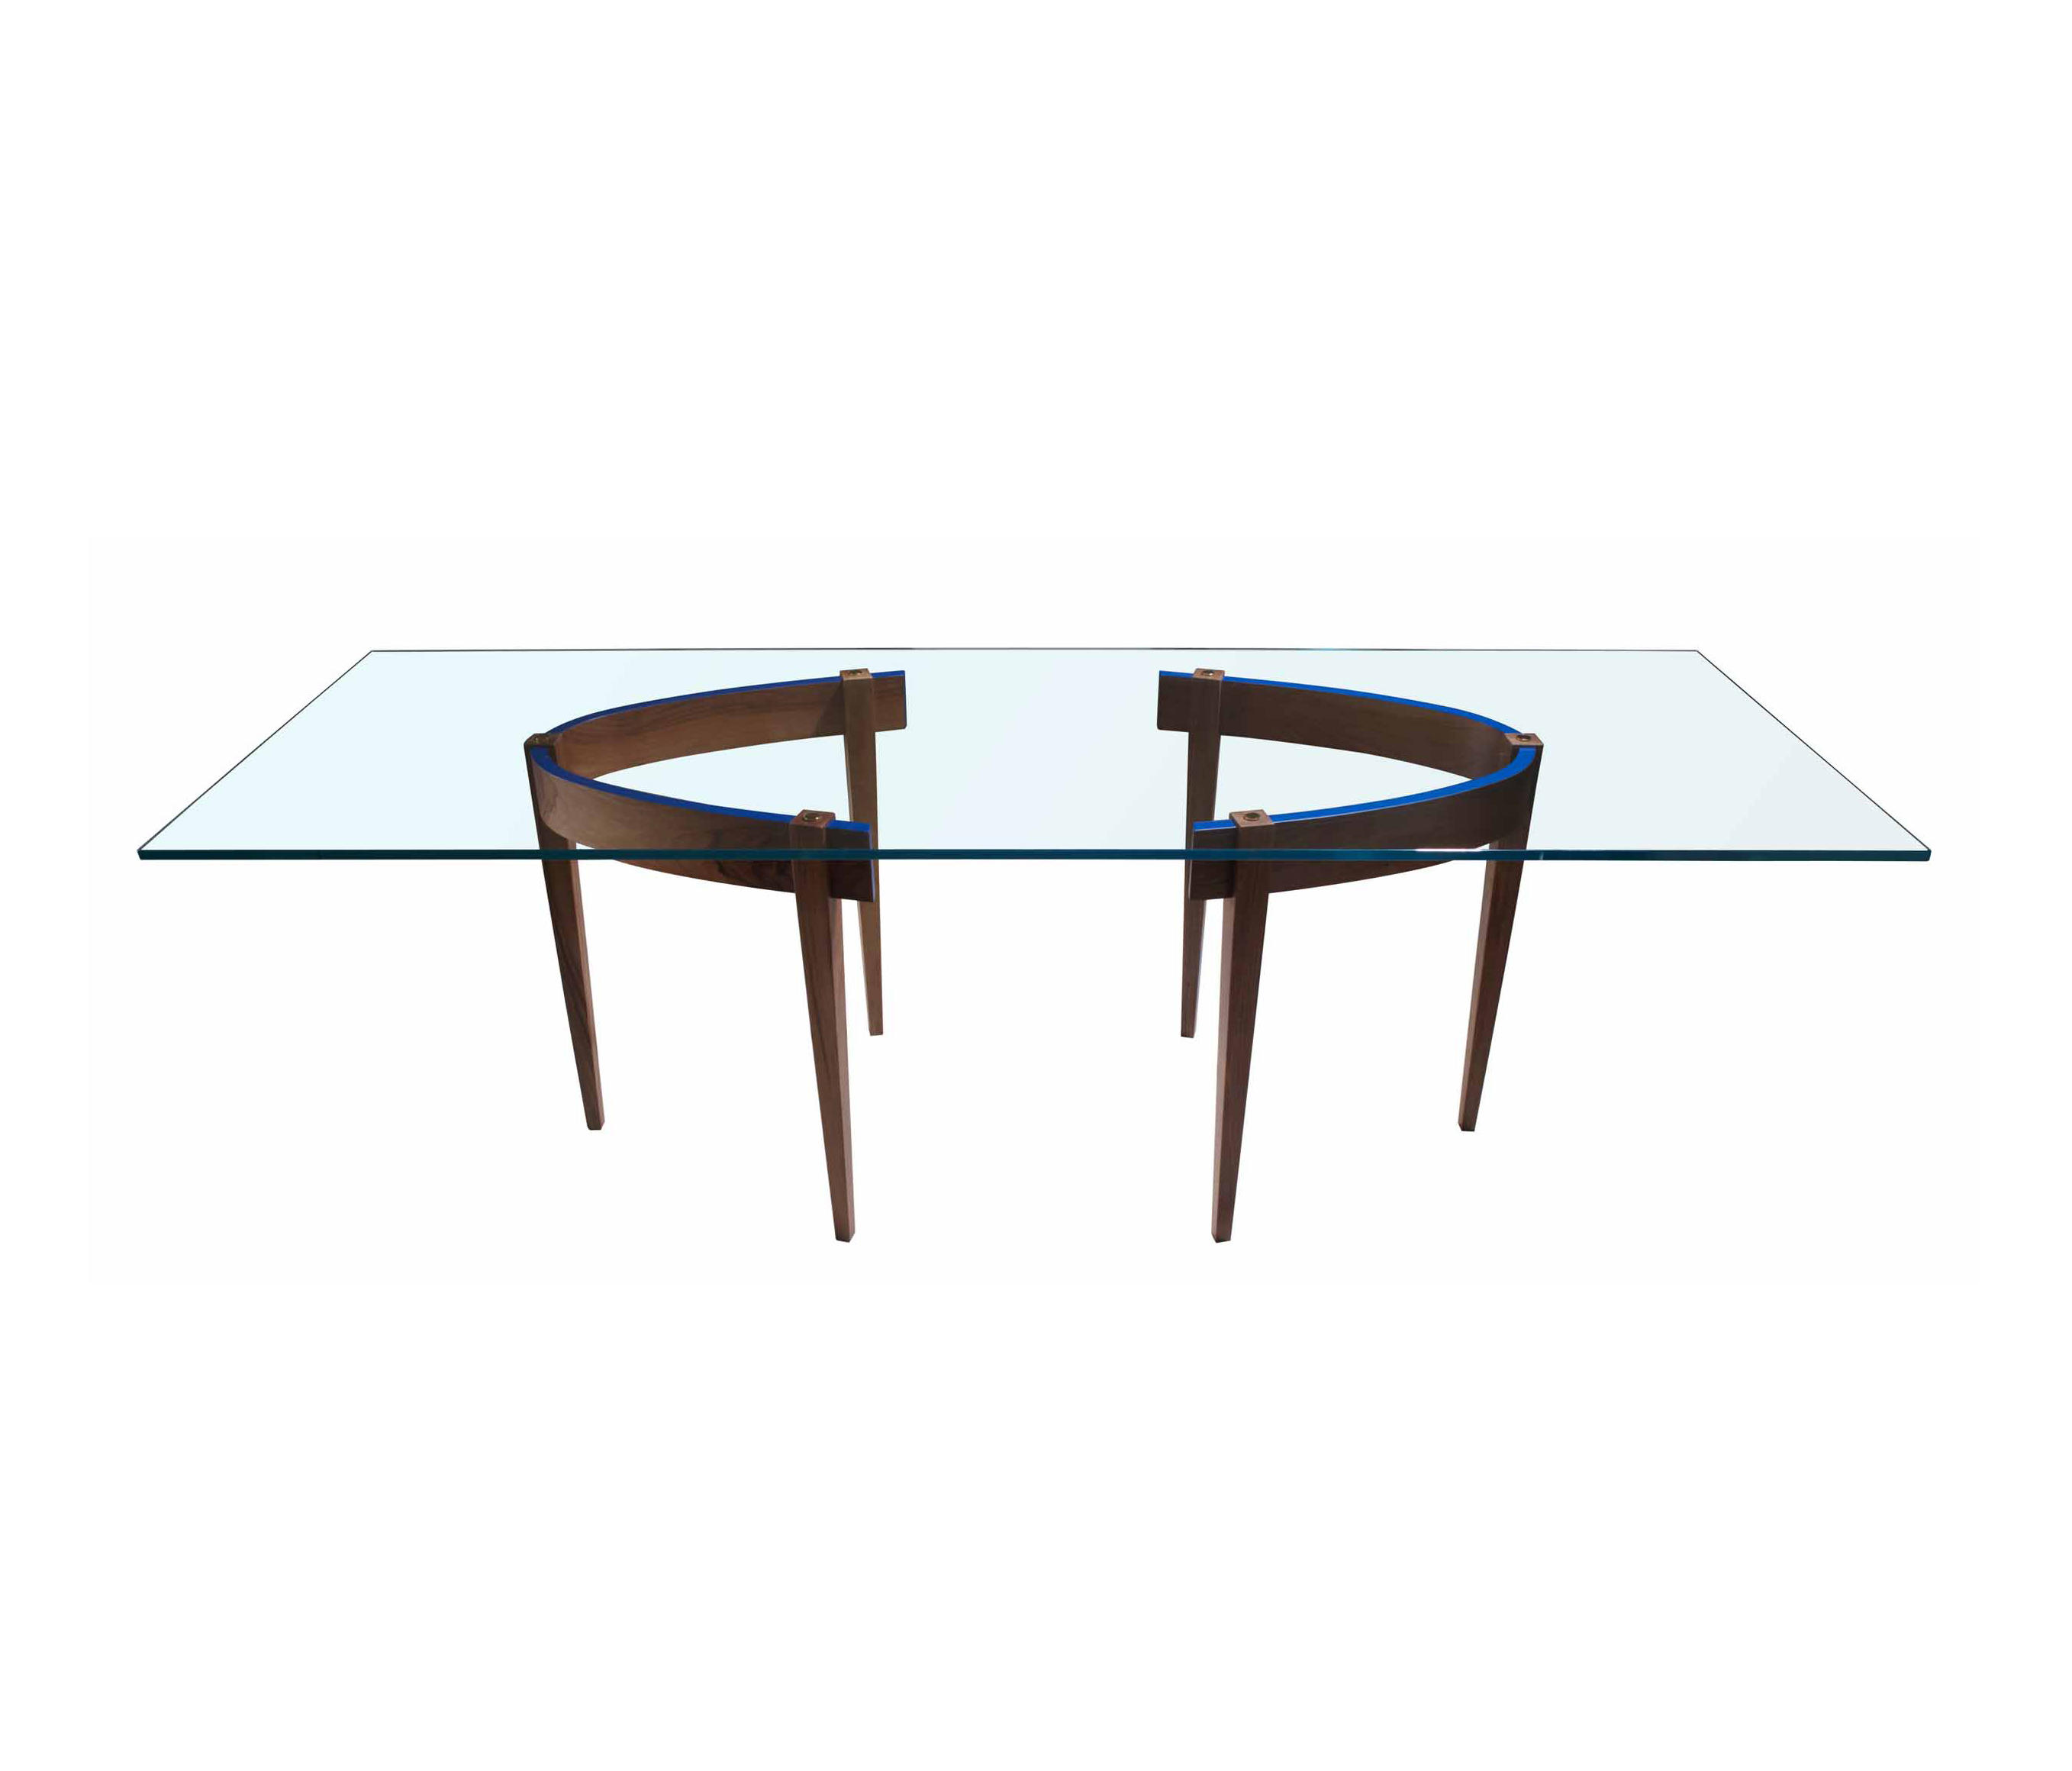 Couchtisch Adele The Round Table & Designermöbel | Architonic